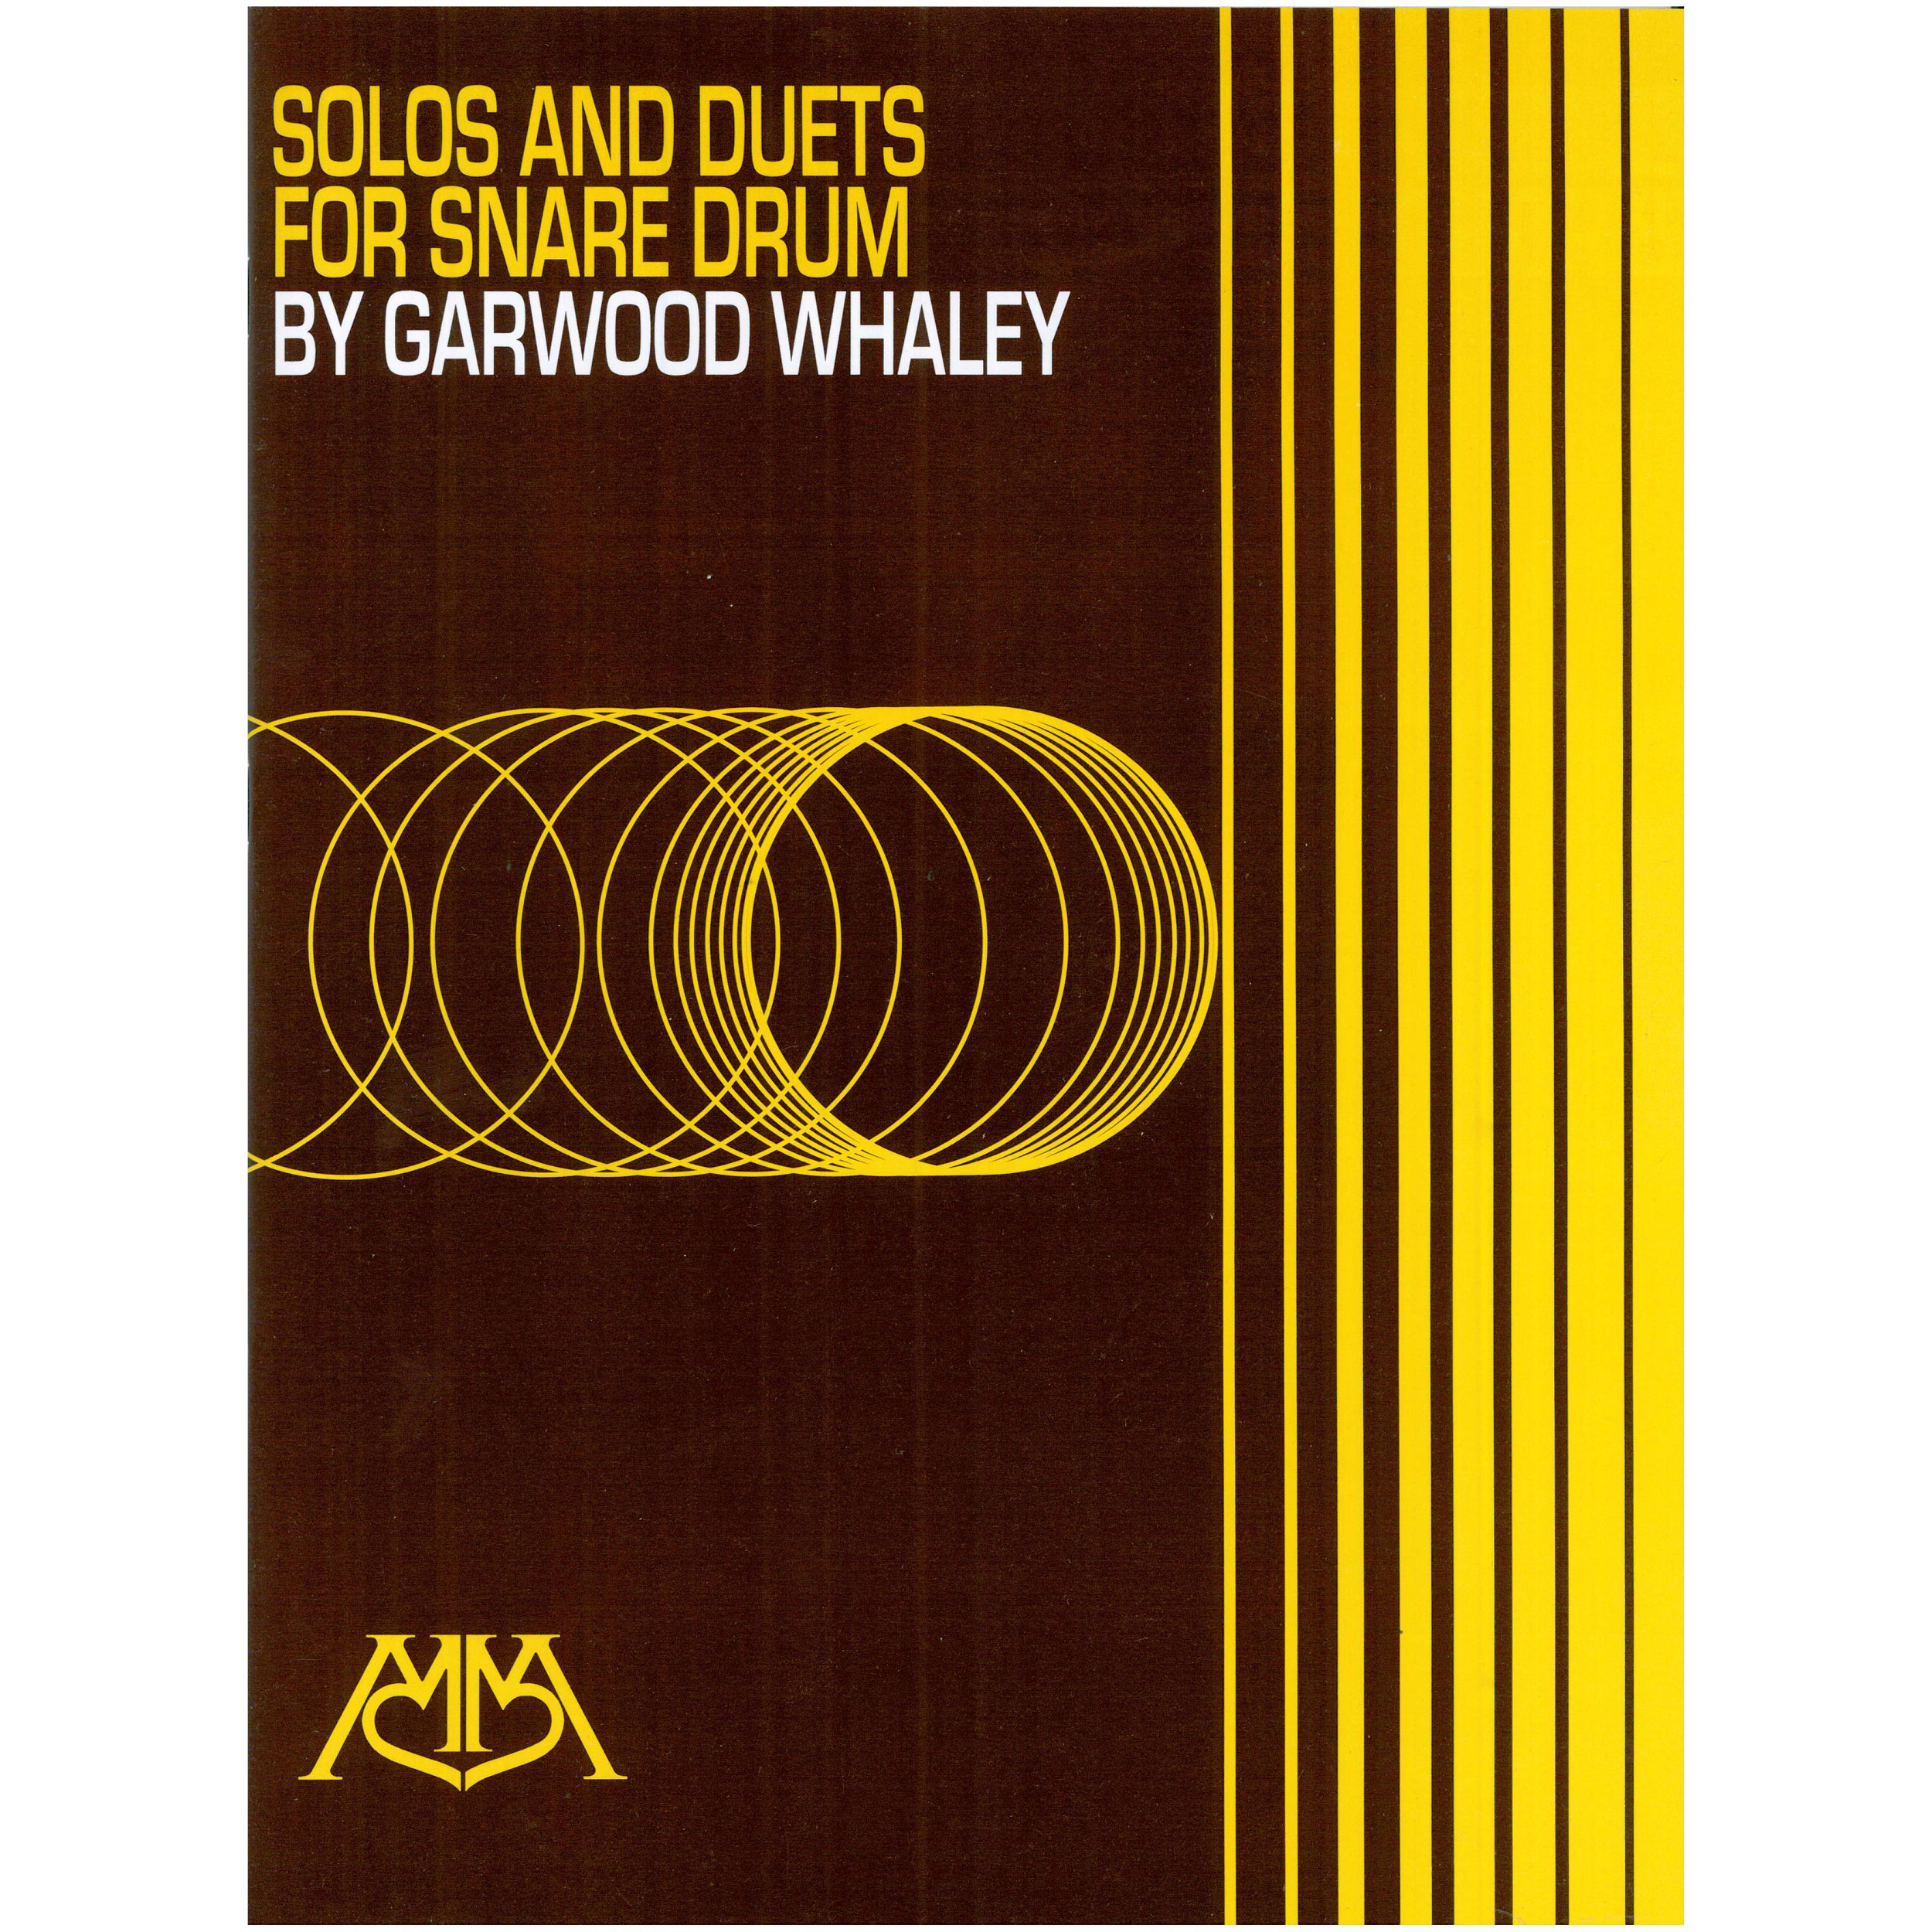 Solos and Duets for Snare Drum by Garwood Whaley